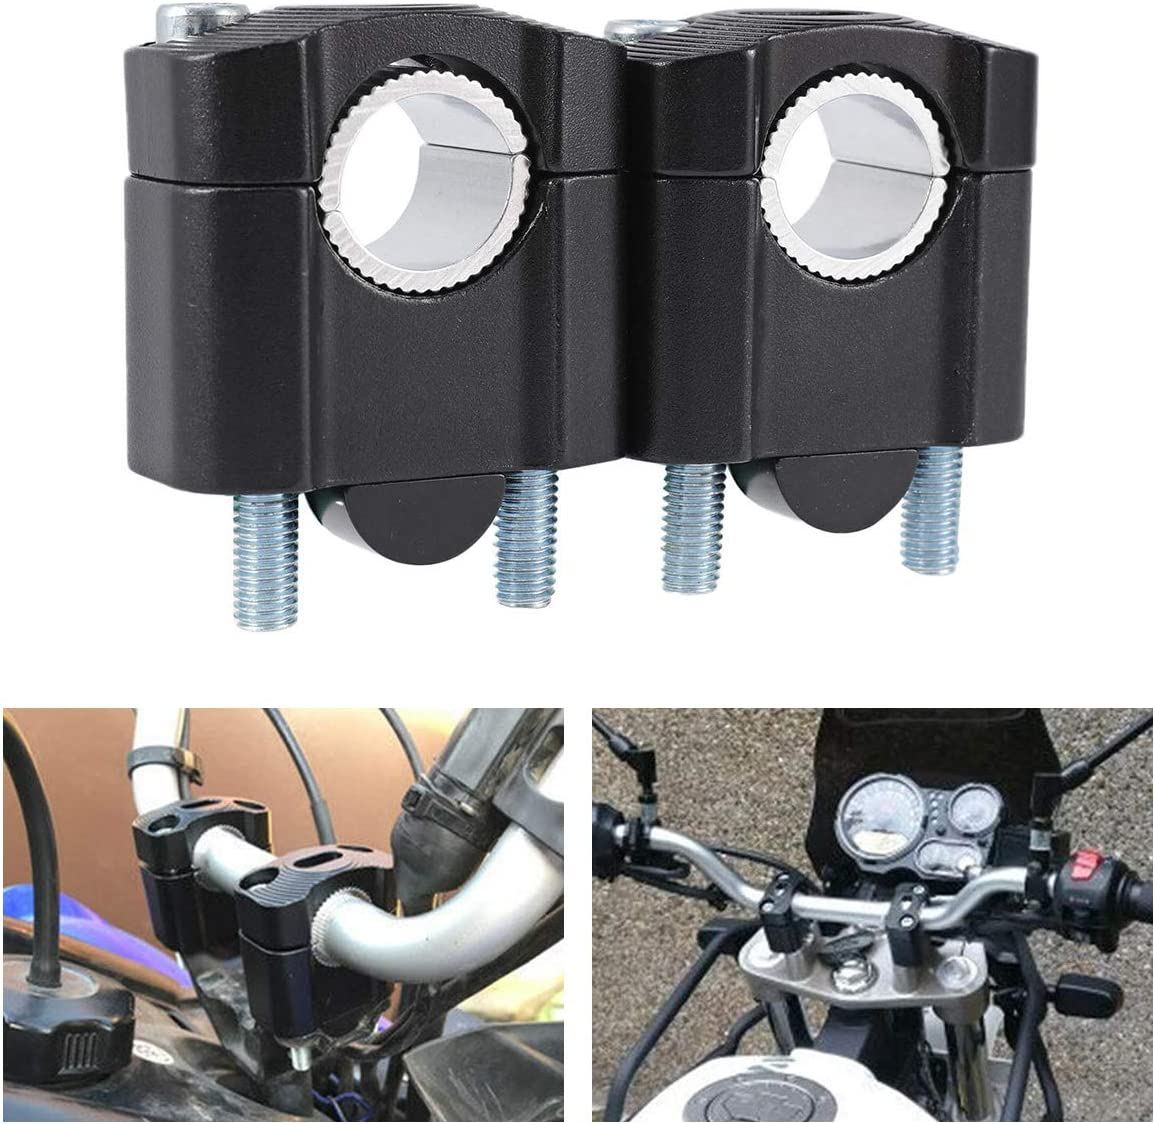 INNOGLOW Motorcycle Handlebar Cheap 2021 spring and summer new SALE Start Risers 1 8